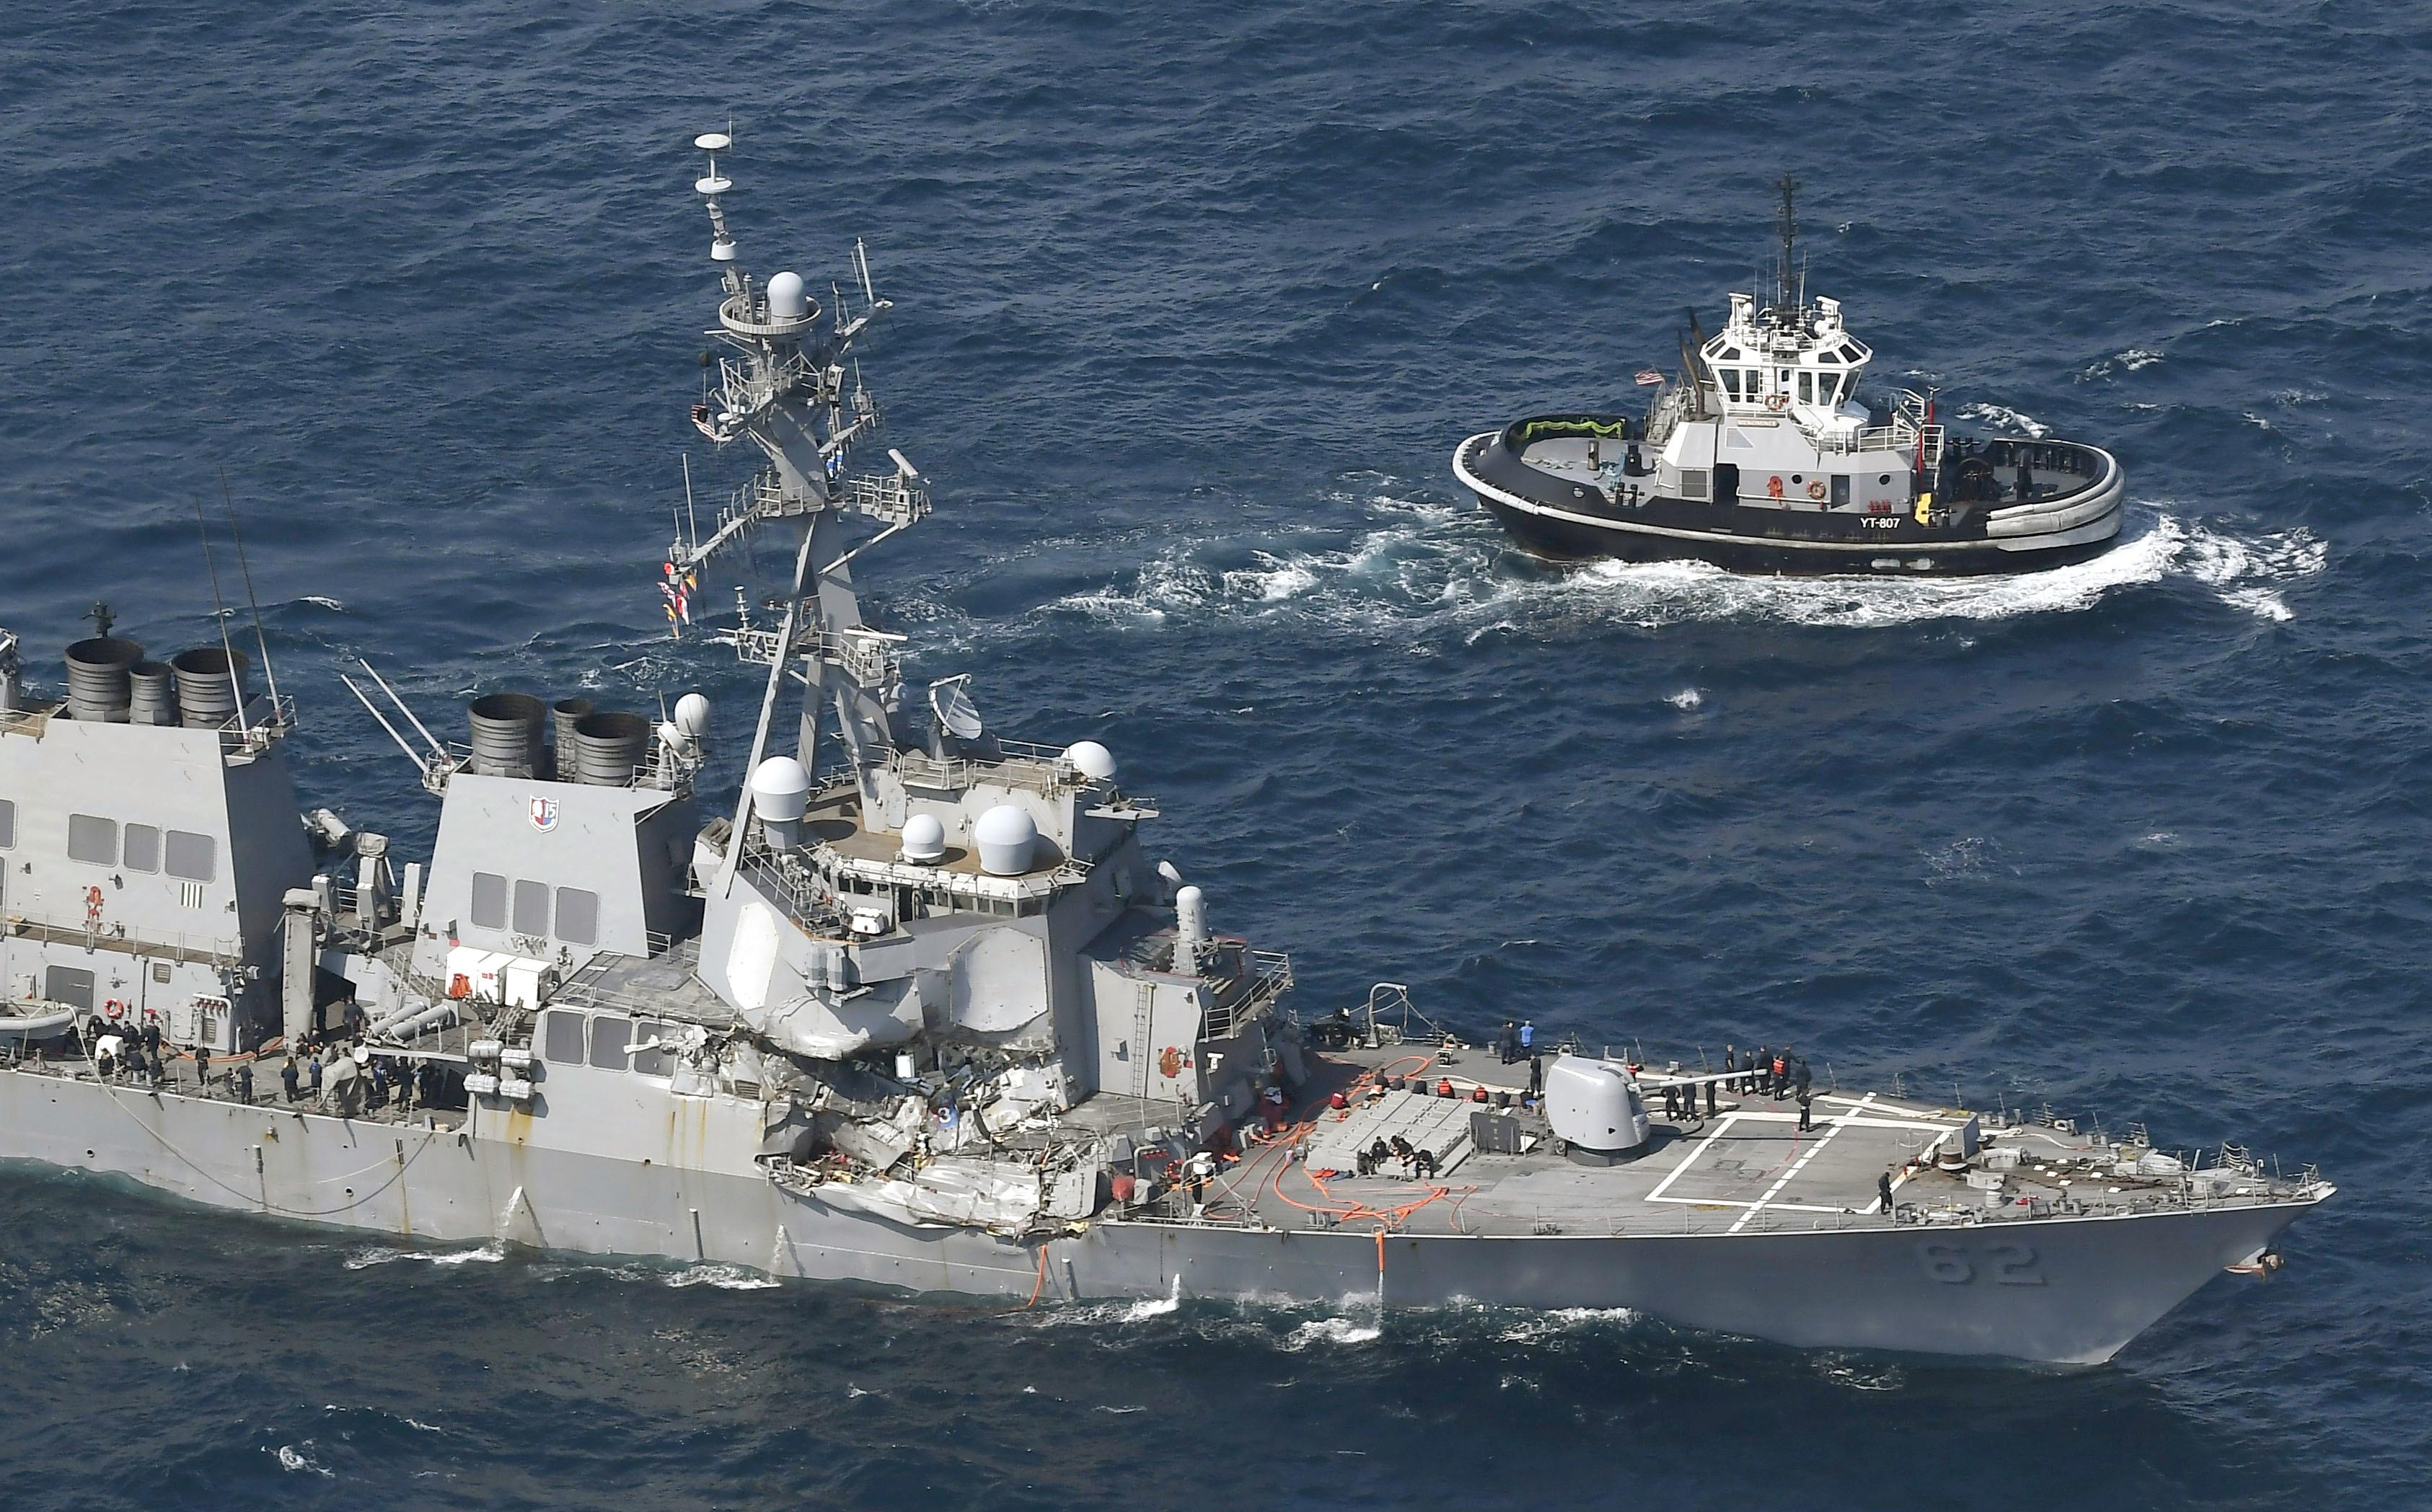 The USS Fitzgerald, left, heads to Yokosuka, home base of the 7th Fleet,  beside a U.S. tugboat, off Shimoda, Shizuoka prefecture, Japan, after the Navy destroyer collided with a merchant ship, Saturday,  June 17, 2017.  The U.S. Navy says the USS Fitzgerald suffered damage below the water line on its starboard side after it collided with a Philippine-flagged merchant ship.  (Iori Sagisawa/Kyodo News via AP)